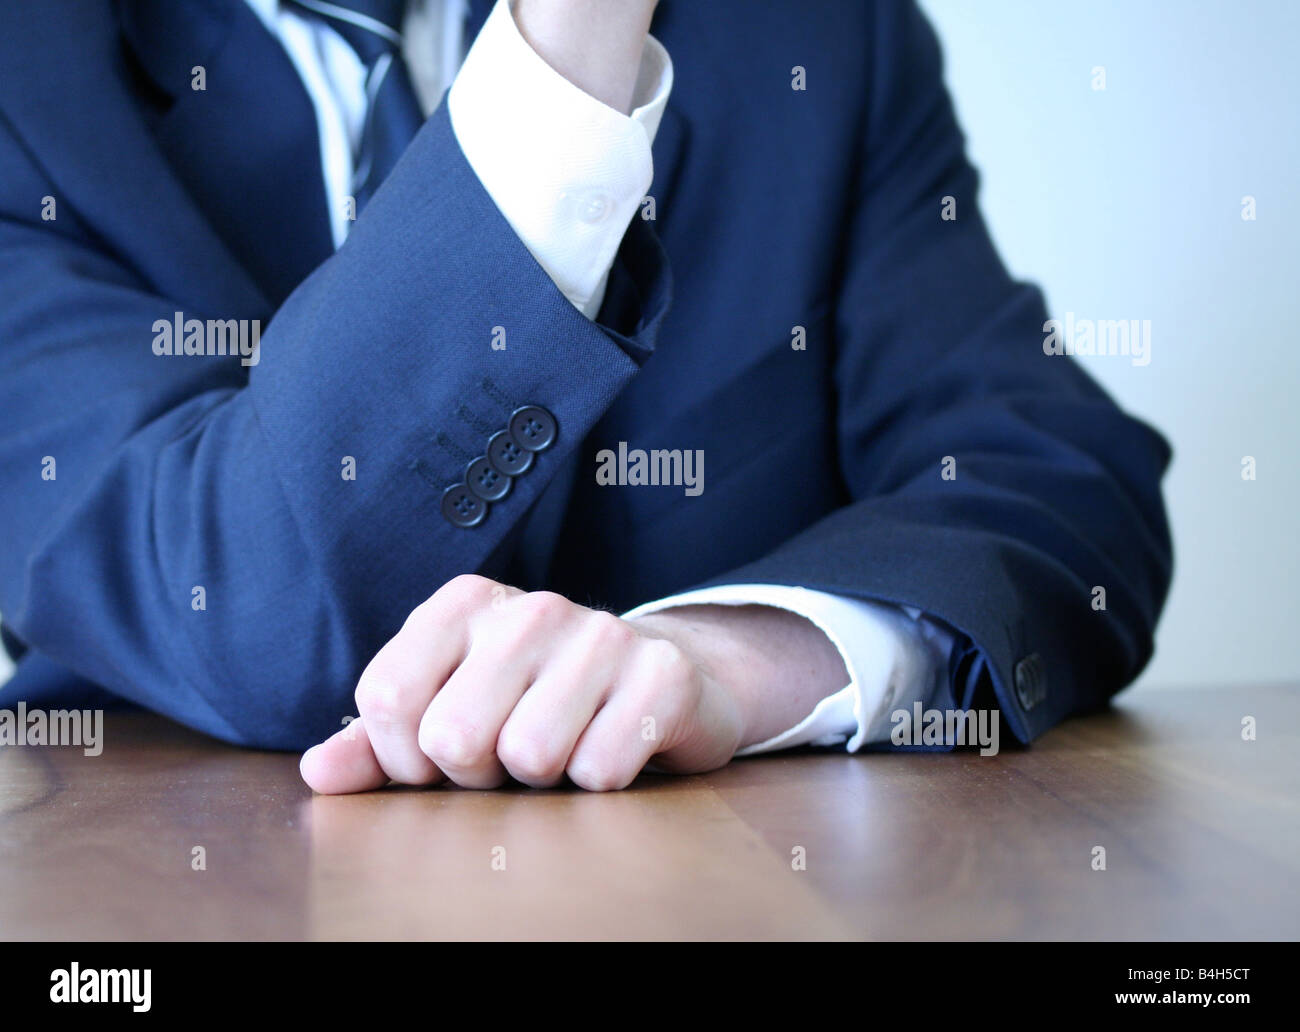 Midsection view of businessman sitting at table in office - Stock Image